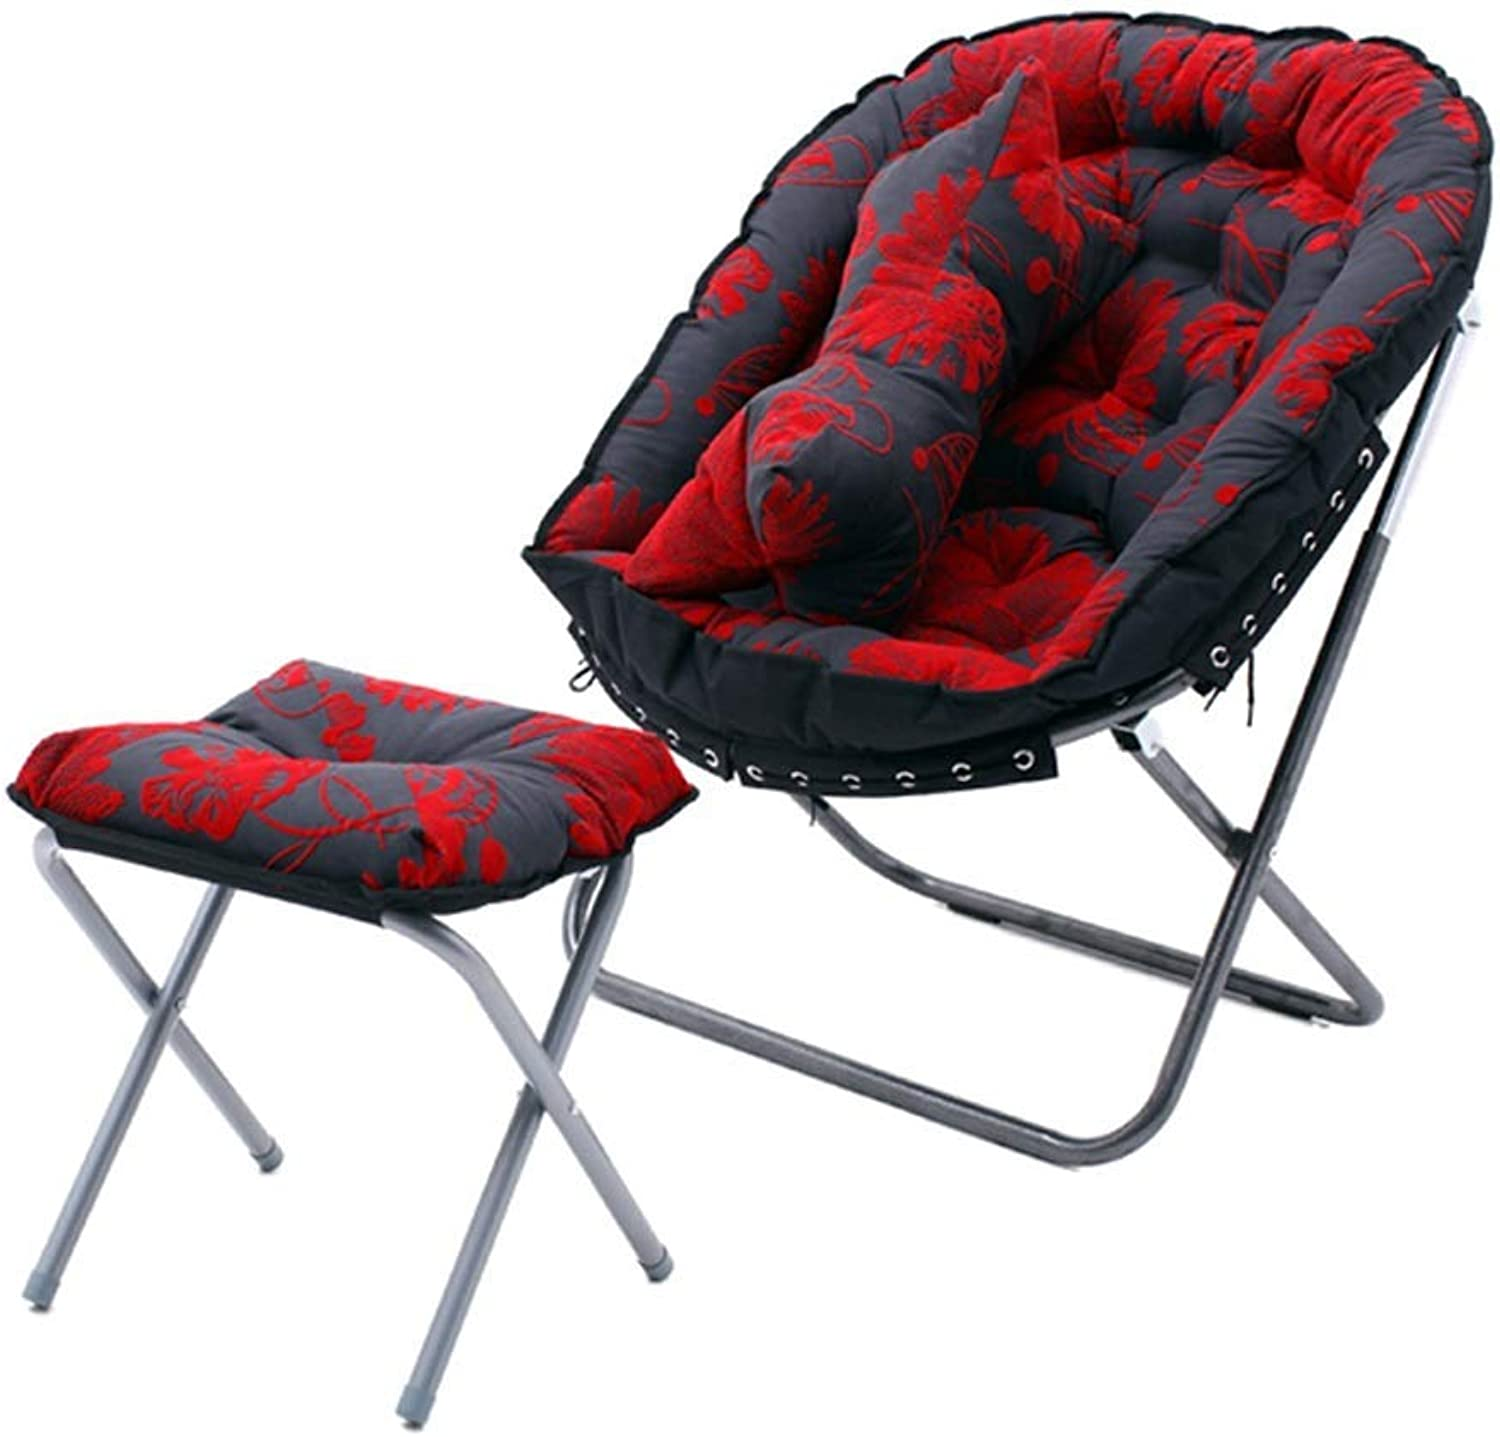 Sofa Chair Outdoor Folding Recliner Chairs Sun Lounger Camping Chair Patio Garden Chair Computer Chair Multifunctional Folding Chair,b